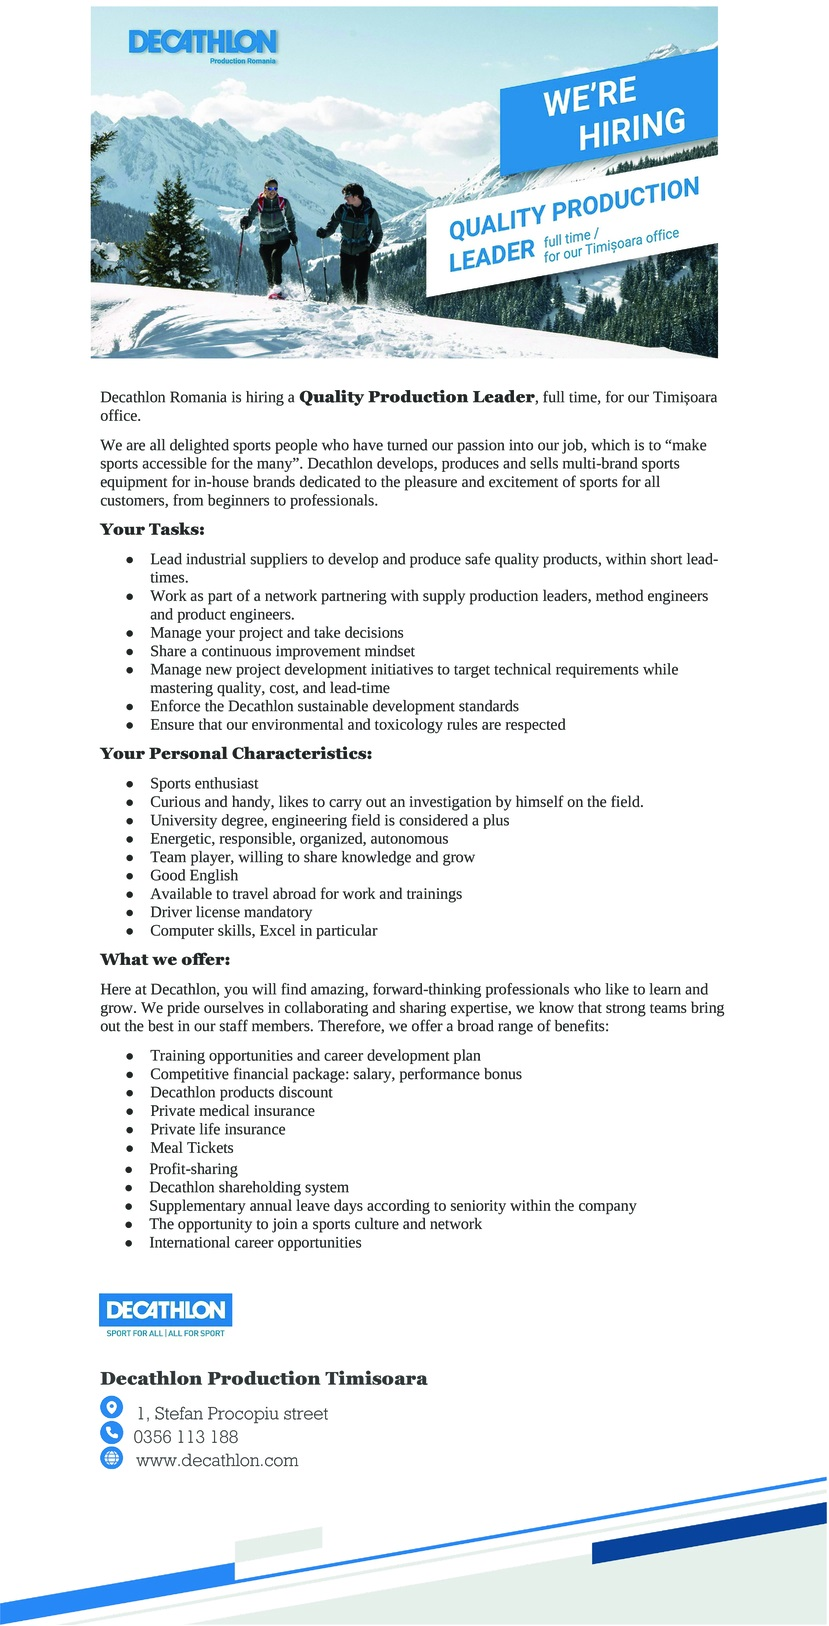 """Your Personal Characteristics:  -sports enthusiast -curious and handy, like to carry out investigation by himself on the field. -engineering studies ( it is a plus) -energetic, responsible, organized, autonomous -team spirit, willing to share -good English -available to travel abroad for work and training's -driver license mandatory -computer skills Your Tasks:  -manage each supplier to develop and produce safe quality products, within short lead-times. -you work in a network with team partners, supply production leader, method engineer and product engineer. -to manage your project and take the decision. -evaluate and ensure the quality of your products during production -share continuous improvement mindset -manage new project development to reach technical requirement while mastering quality, cost, and lead-time -enforce the Decathlon social charter -ensure that our environmental and toxicology rules are respected   What we offer:  Here at Decathlon, you will find amazing, forward-thinking professionals who like to learn and grow. We pride ourselves in collaborating and sharing expertise, we know that strong teams bring out the best in our staff members. Therefore, we offer a broad range of benefits: Training opportunities and career development plan; Competitive financial package: salary, performance bonus Decathlon products discount Private medical insurance; Private life insurance Exceptional office comfort Profit sharing Decathlon shareholding system Supplementary annual leave days according to seniority within the company We are all delighted sports people who have turned our passion into our job, which is to """"make sports accessible for the many""""Decathlon develops, produces and sells multi-brand sports equipment for in-house brands dedicated to the pleasure and excitement of sports for all customers, from beginners to professionals."""